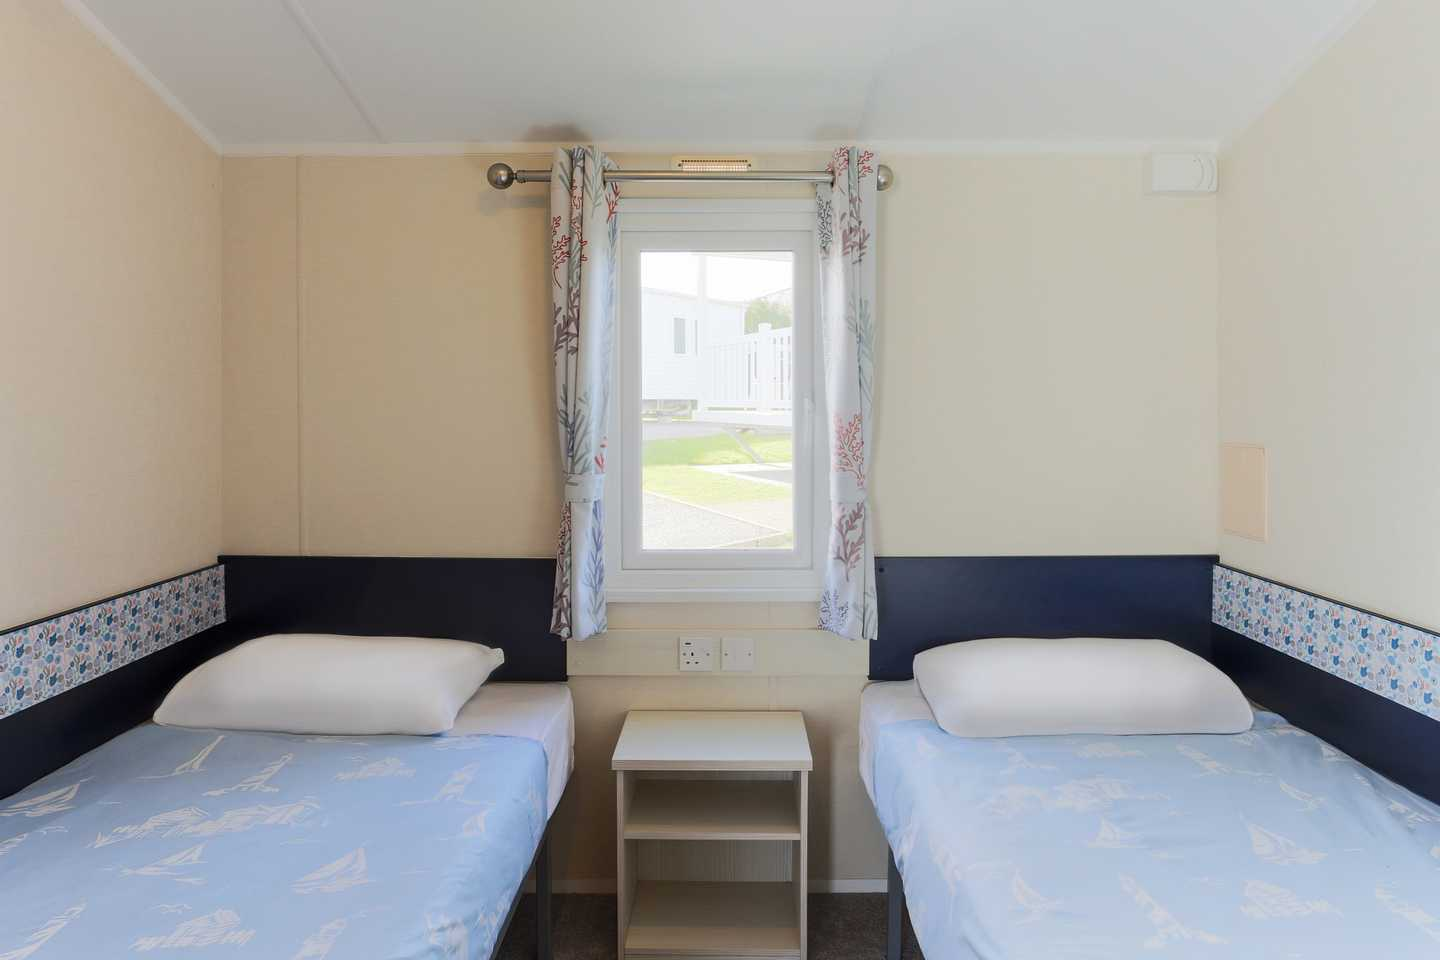 An Adapted caravan twin bedroom with two beds and drawer unit